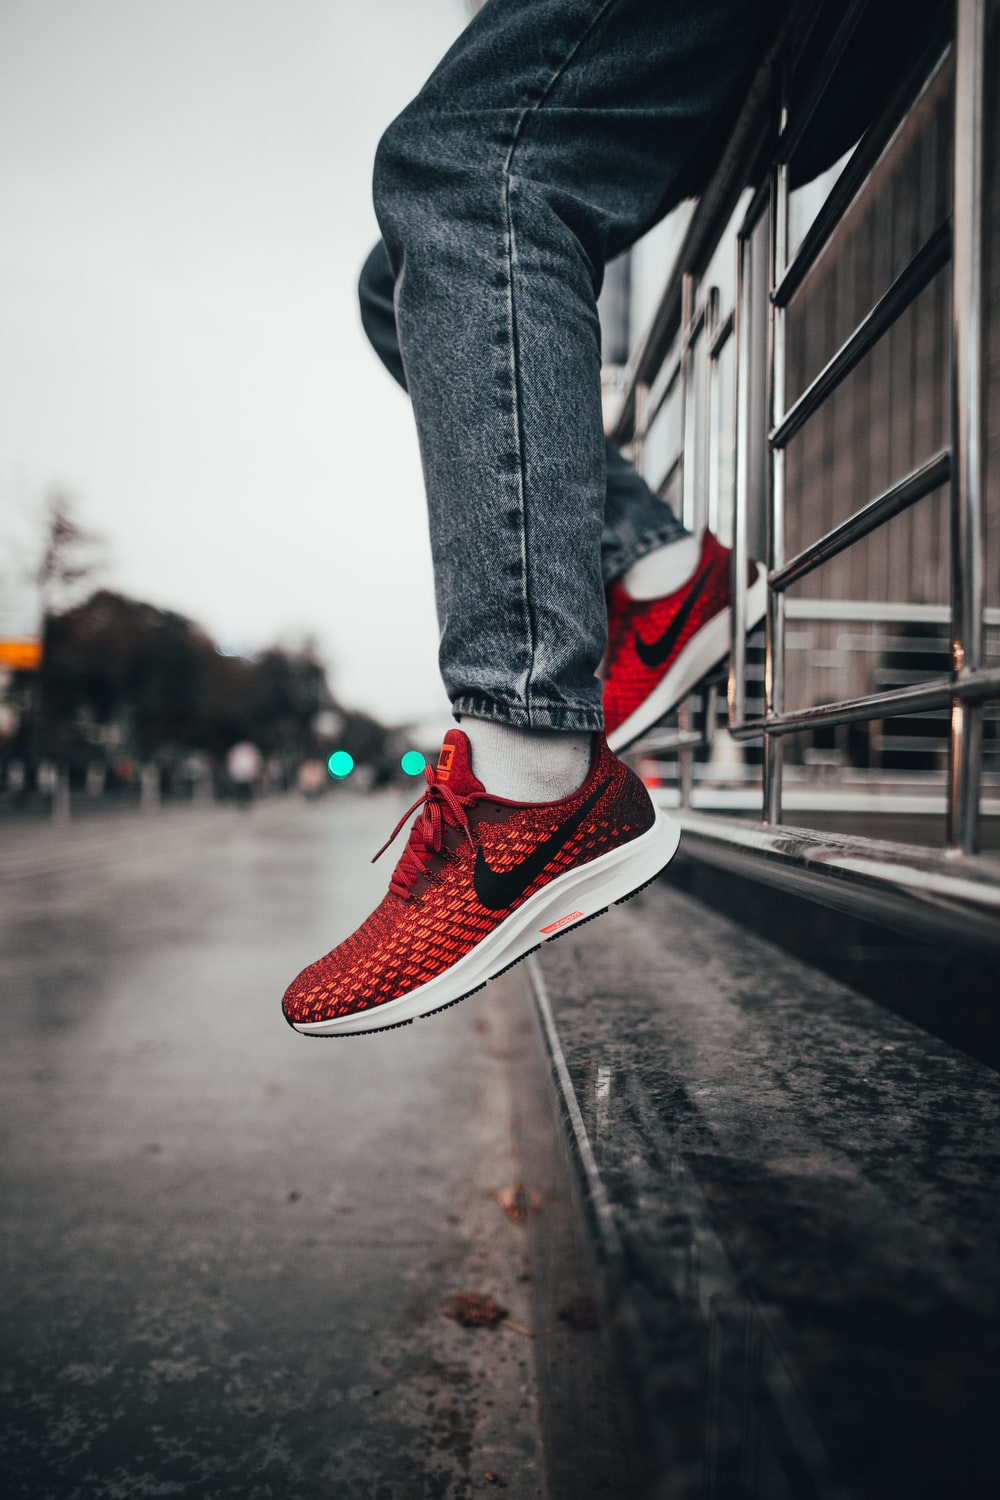 person wearing red Nike sneakers